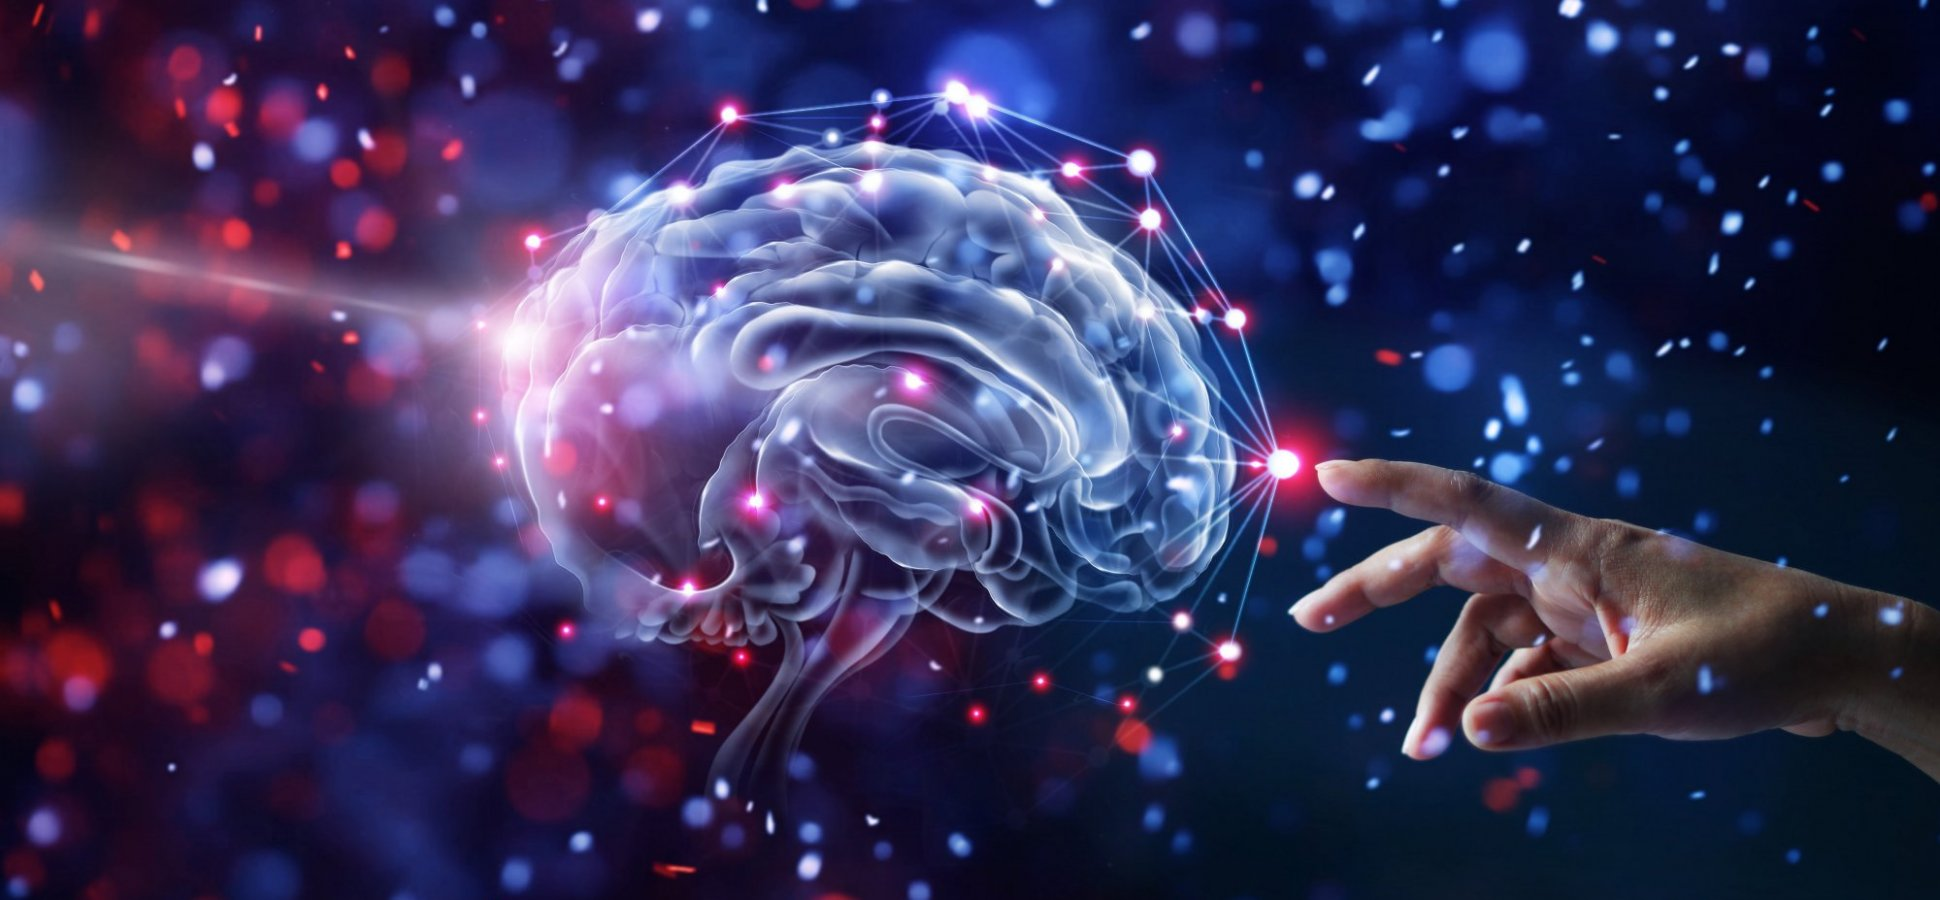 3 Simple Questions to Ask Yourself That Will Help Your Brain Work Better